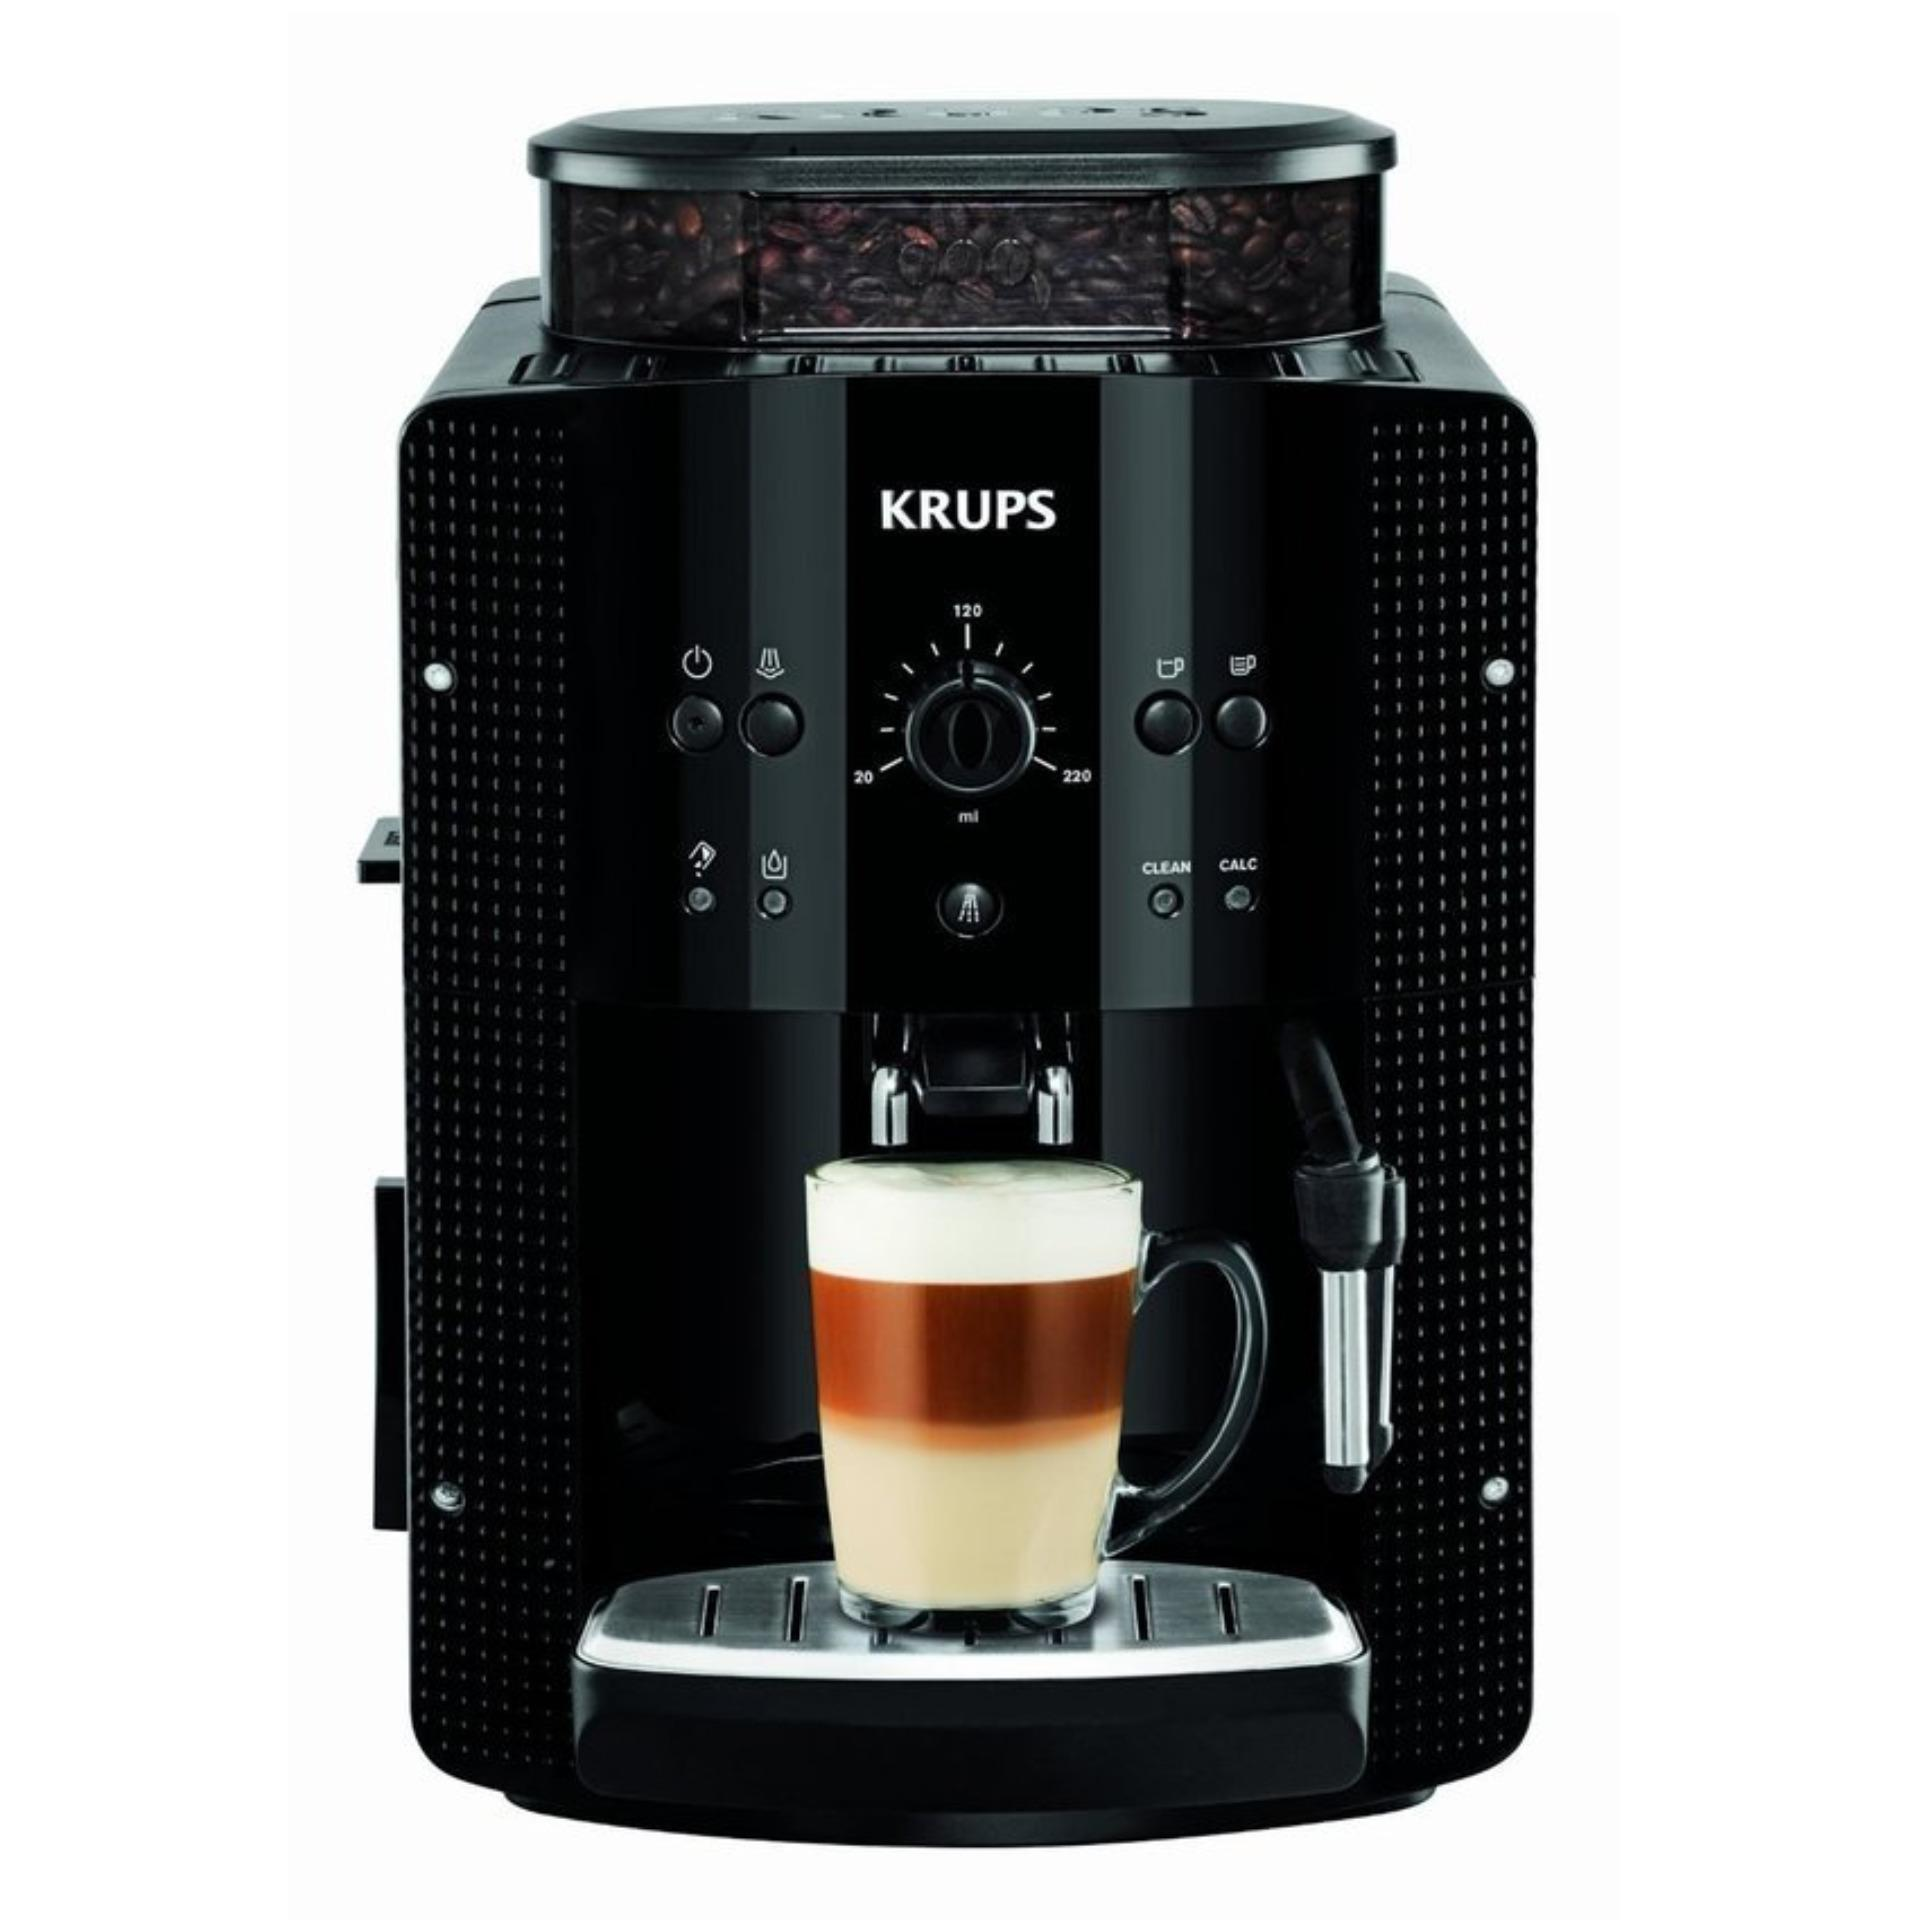 Price Krups Ea8108 Espresso Full Automatic Essen Coffee Machine Krups Original